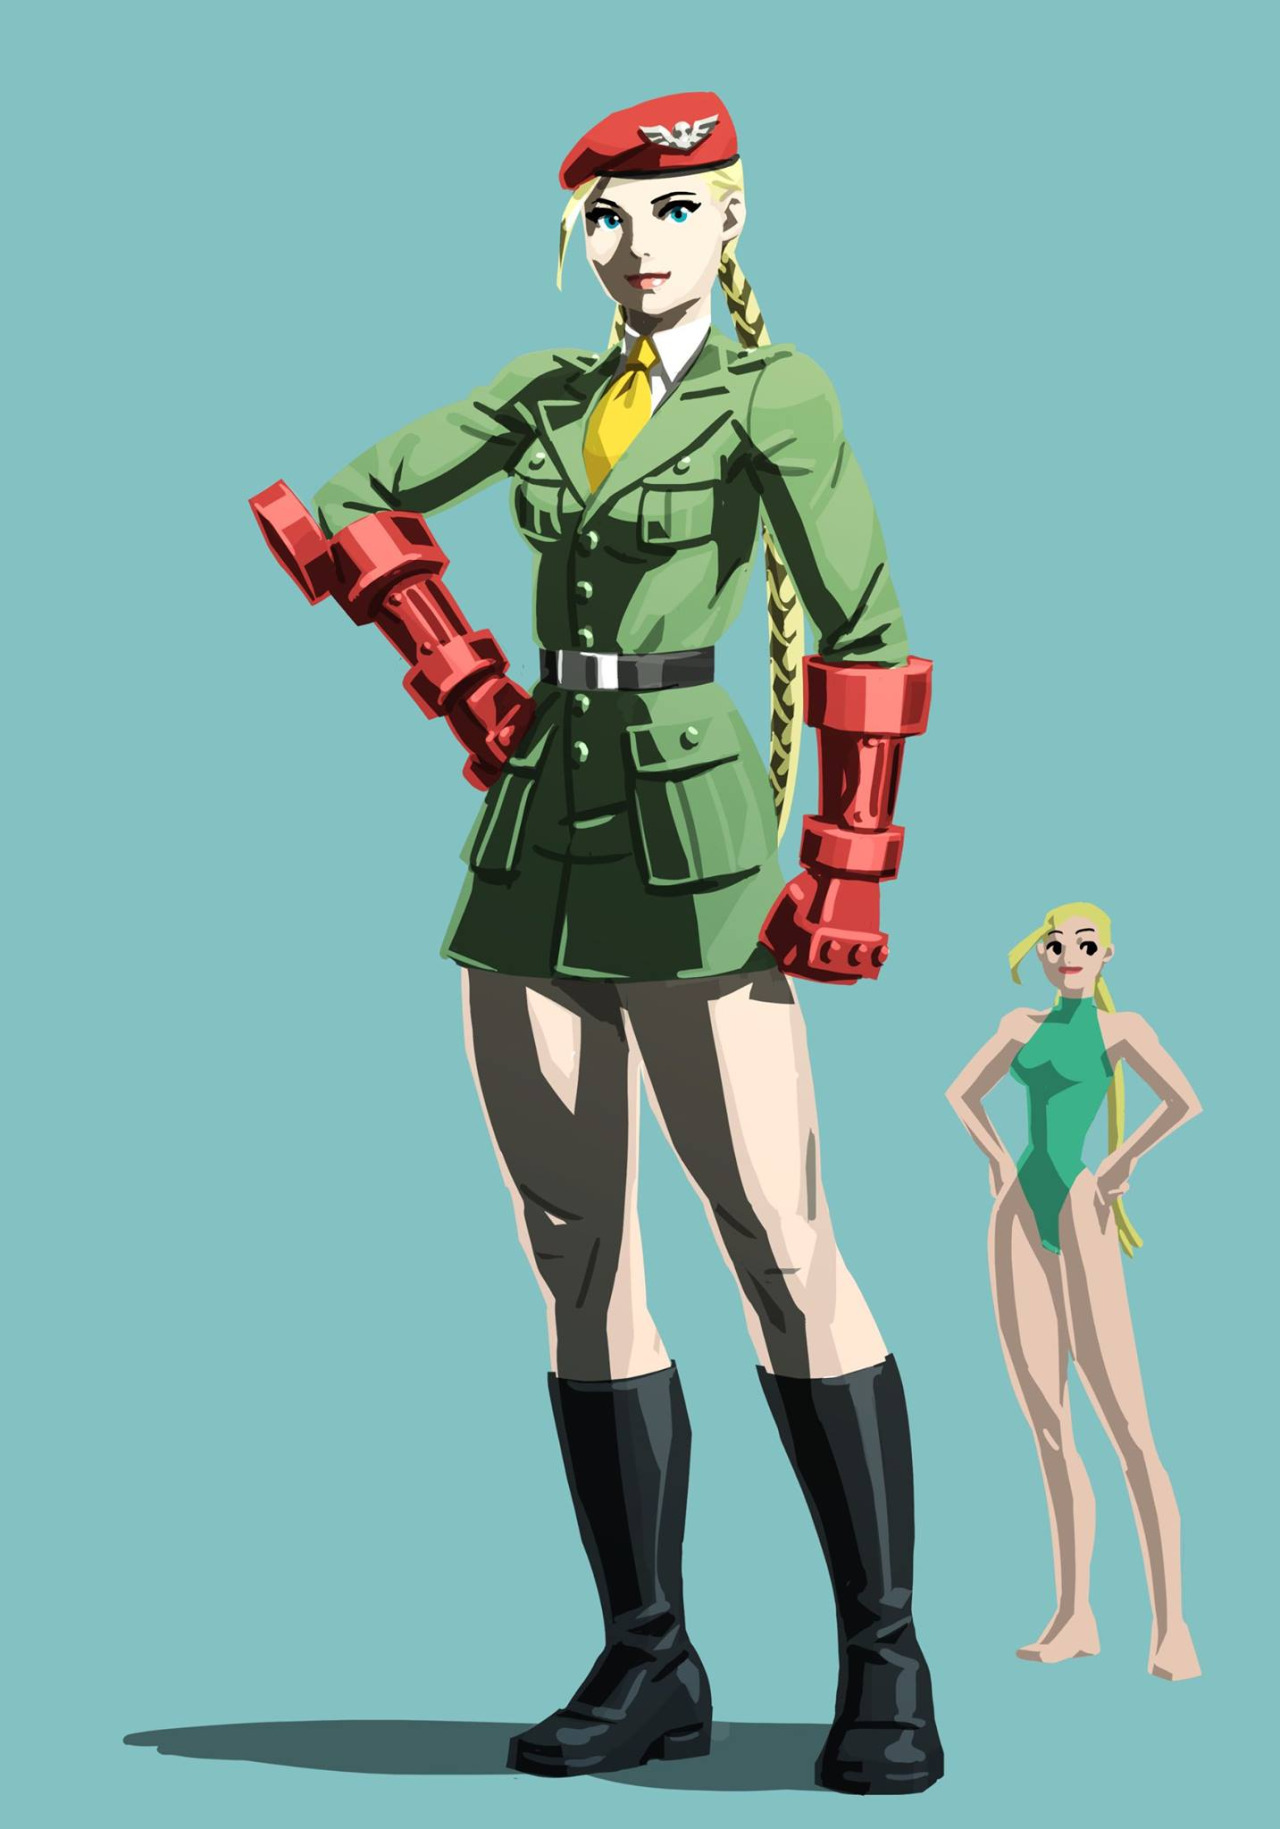 Heres a follow up quickie of the cammy